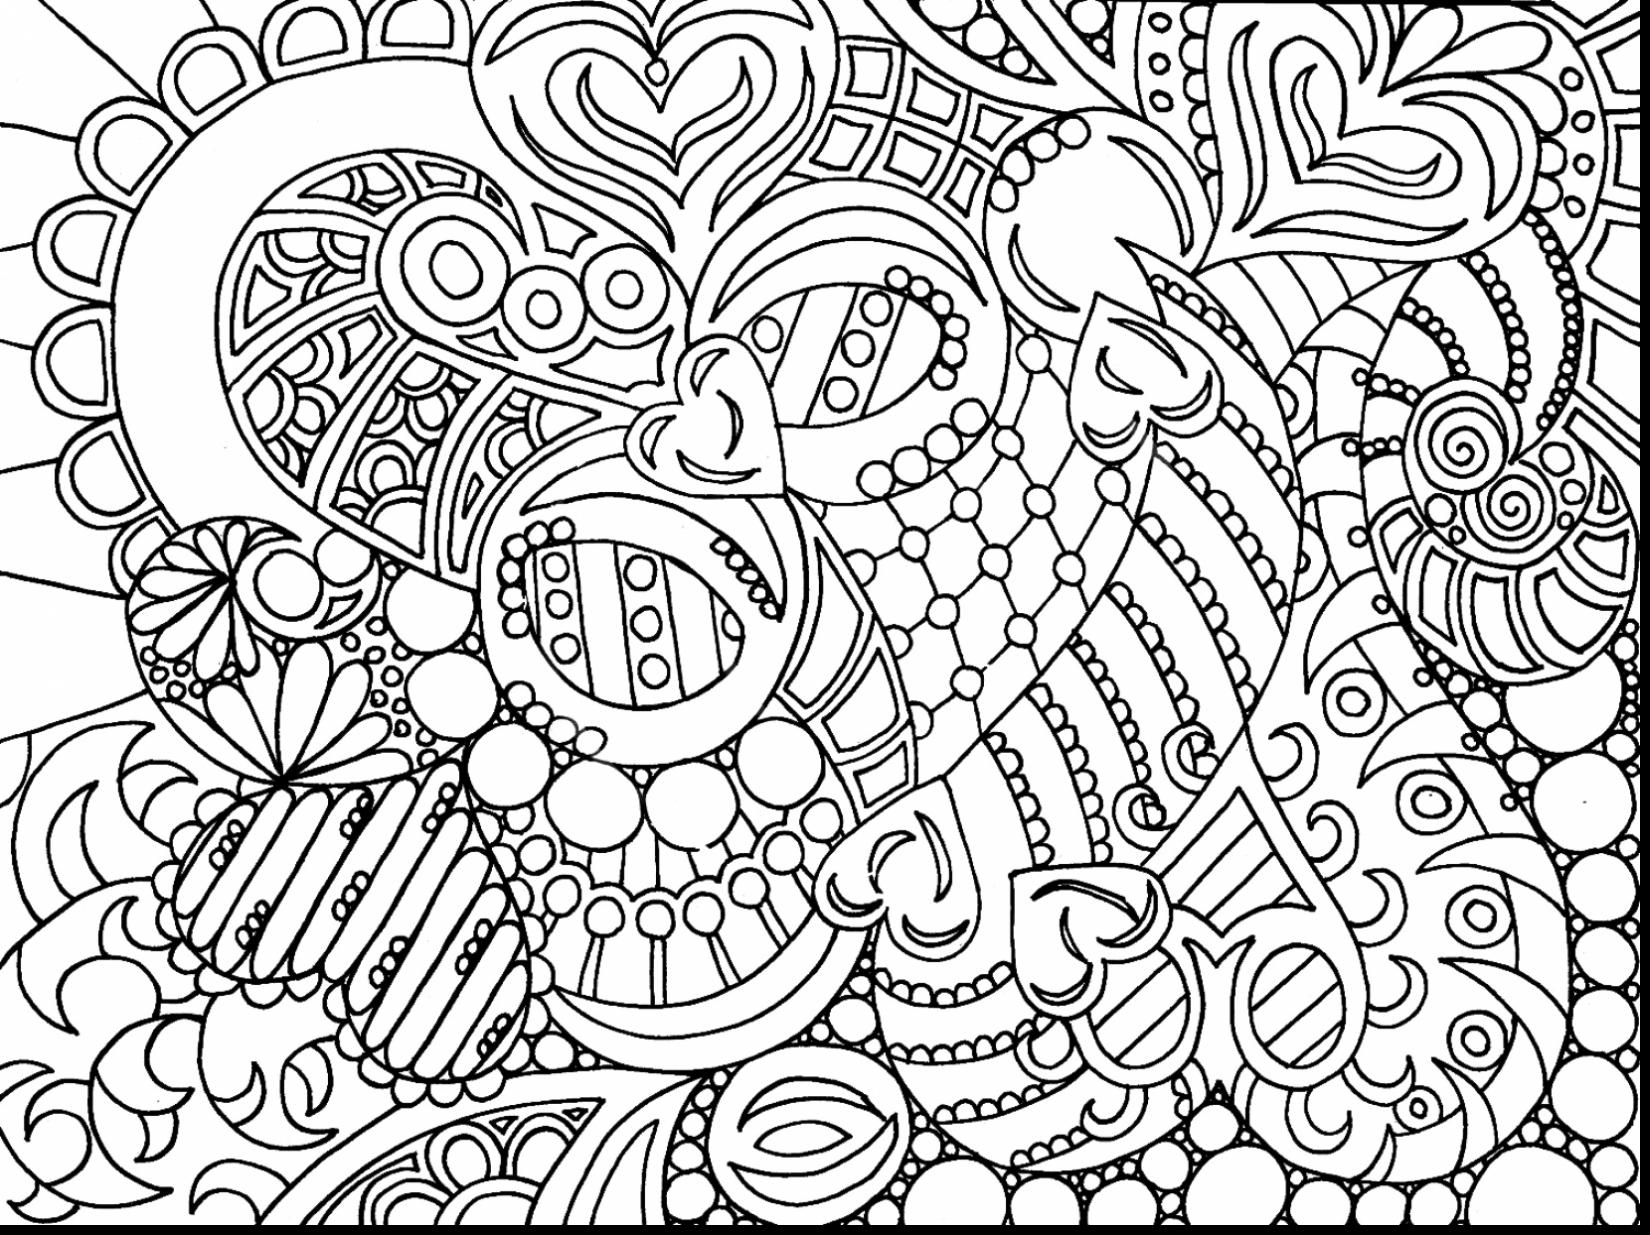 1650x1235 Celtic Mandala Coloring Pages Getcoloringpages To Print